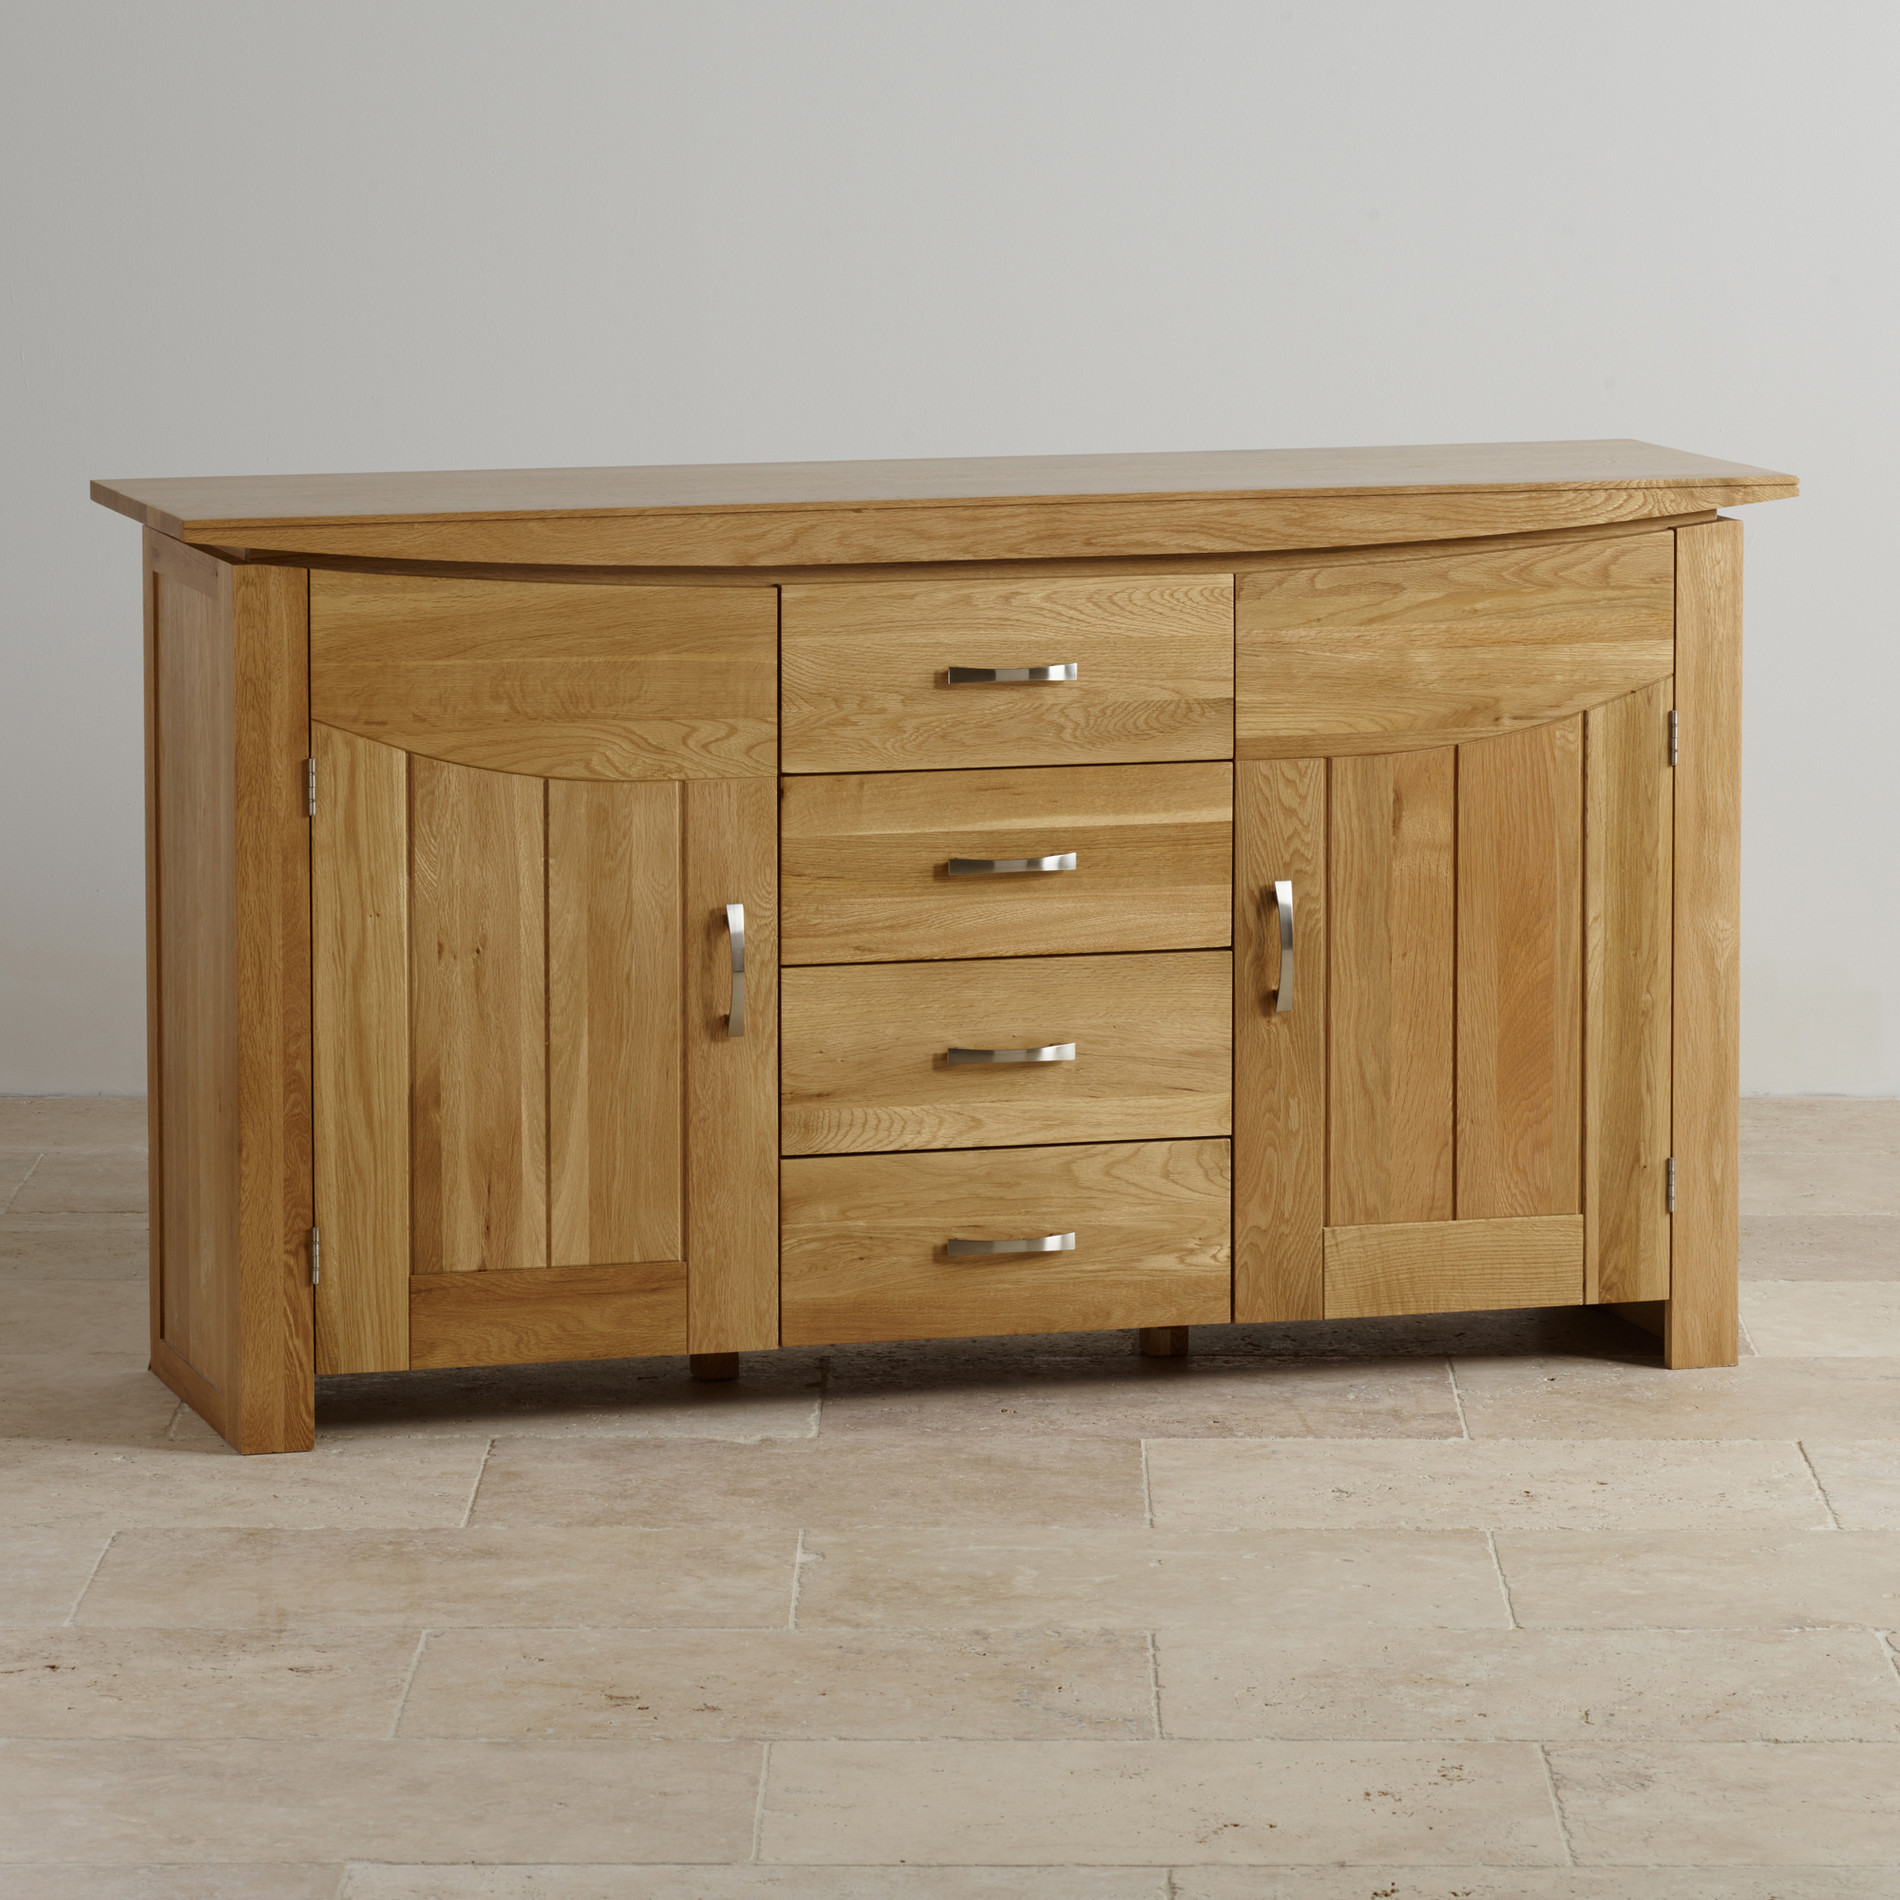 Tokyo large sideboard in natural solid oak oak furniture for Solid oak furniture